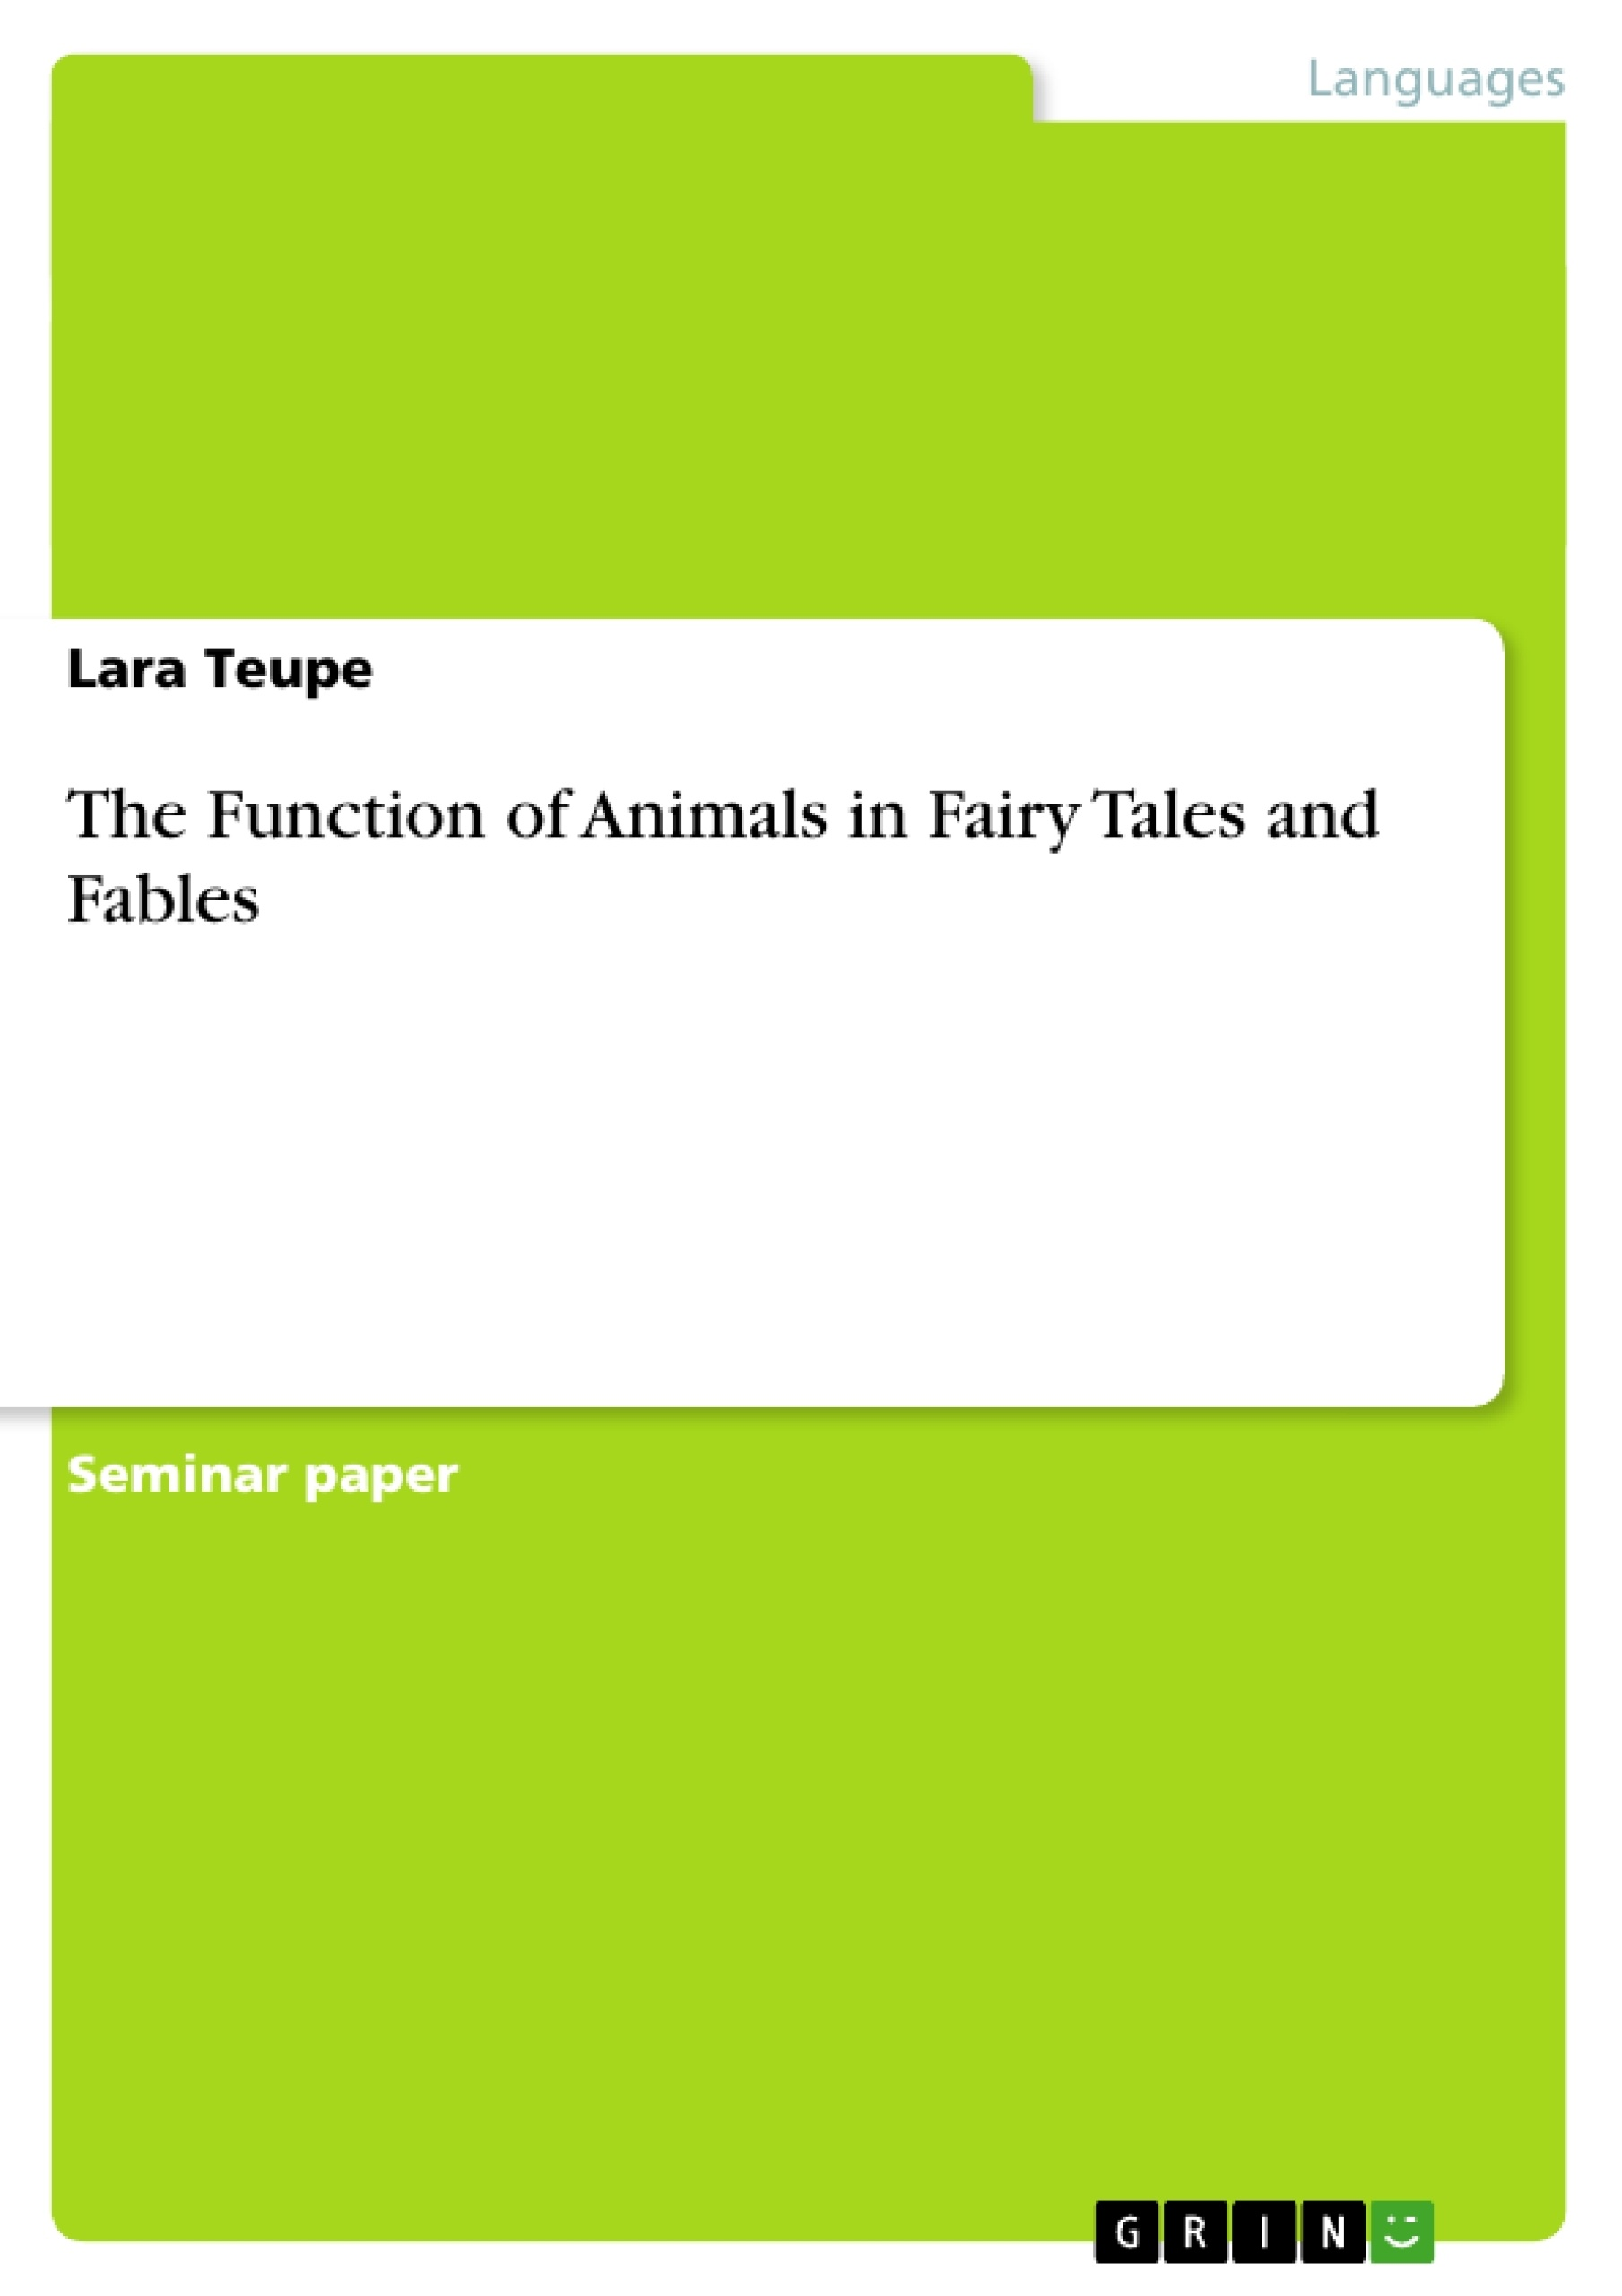 Title: The Function of Animals in Fairy Tales and Fables